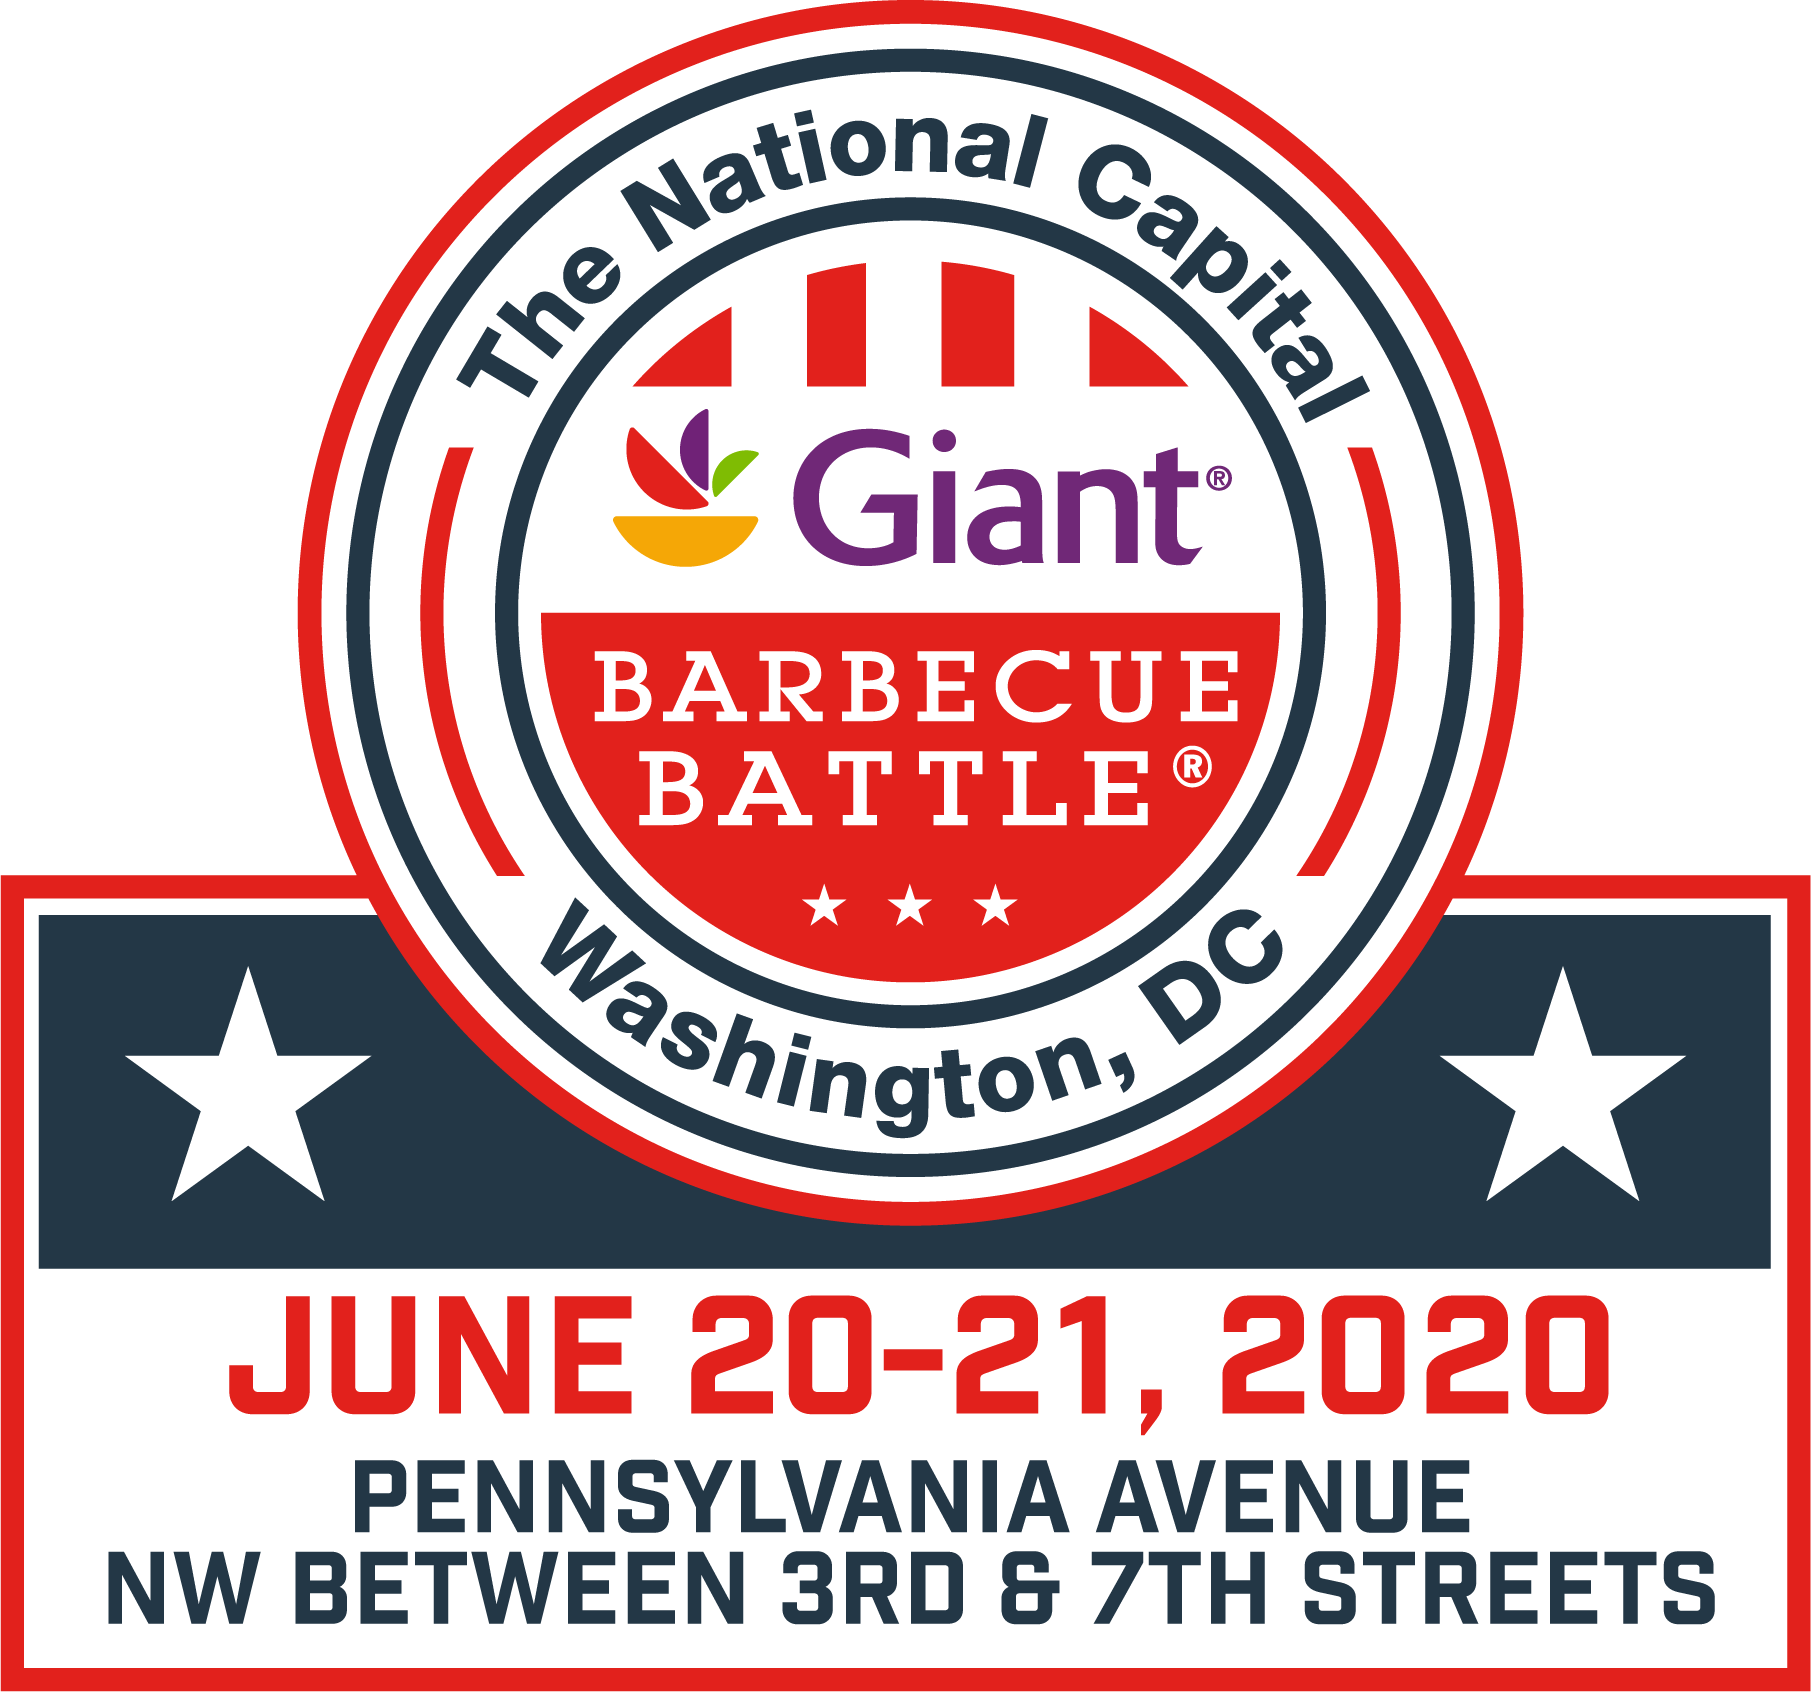 Giant National Capital Barbecue Battle